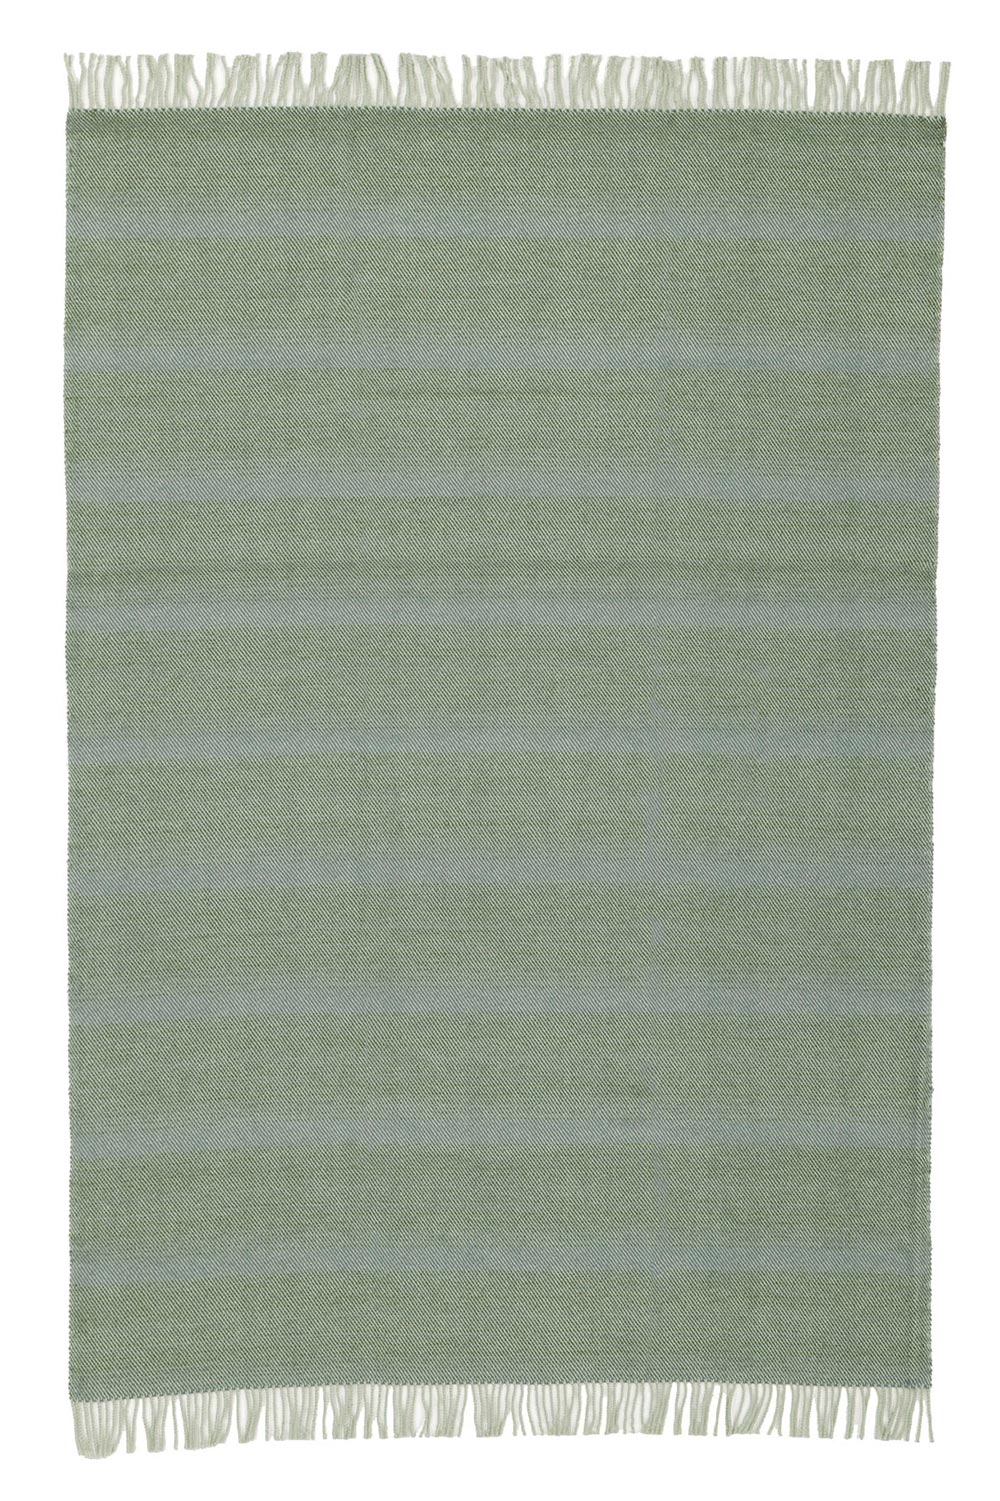 wool blanket in green color with fringes, spread out